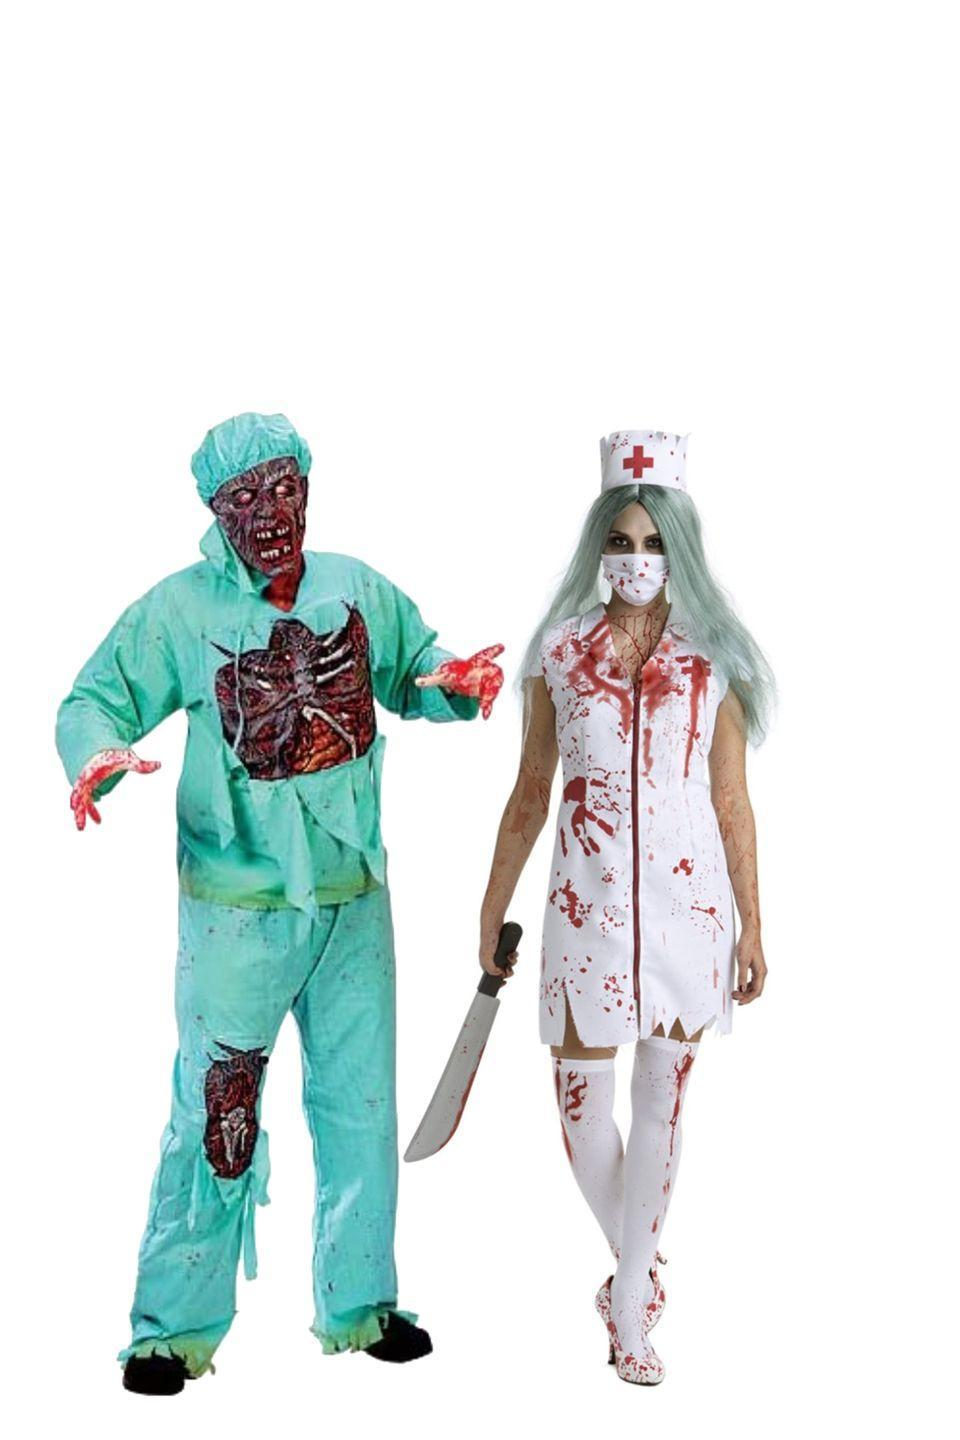 """<p>What's more frightening that two healthcare works turning from healers to killers? </p><p><a class=""""link rapid-noclick-resp"""" href=""""https://www.amazon.com/Fun-World-Zombie-Doctor-Costume/dp/B00284B0IW?tag=syn-yahoo-20&ascsubtag=%5Bartid%7C10070.g.28669645%5Bsrc%7Cyahoo-us"""" rel=""""nofollow noopener"""" target=""""_blank"""" data-ylk=""""slk:Shop Men's Costume"""">Shop Men's Costume</a></p><p><a class=""""link rapid-noclick-resp"""" href=""""https://www.amazon.com/Womens-Zombie-Costume-Bloody-Quality/dp/B01JPOQAK0/?tag=syn-yahoo-20&ascsubtag=%5Bartid%7C10070.g.28669645%5Bsrc%7Cyahoo-us"""" rel=""""nofollow noopener"""" target=""""_blank"""" data-ylk=""""slk:Shop Women's Costume"""">Shop Women's Costume</a> </p>"""